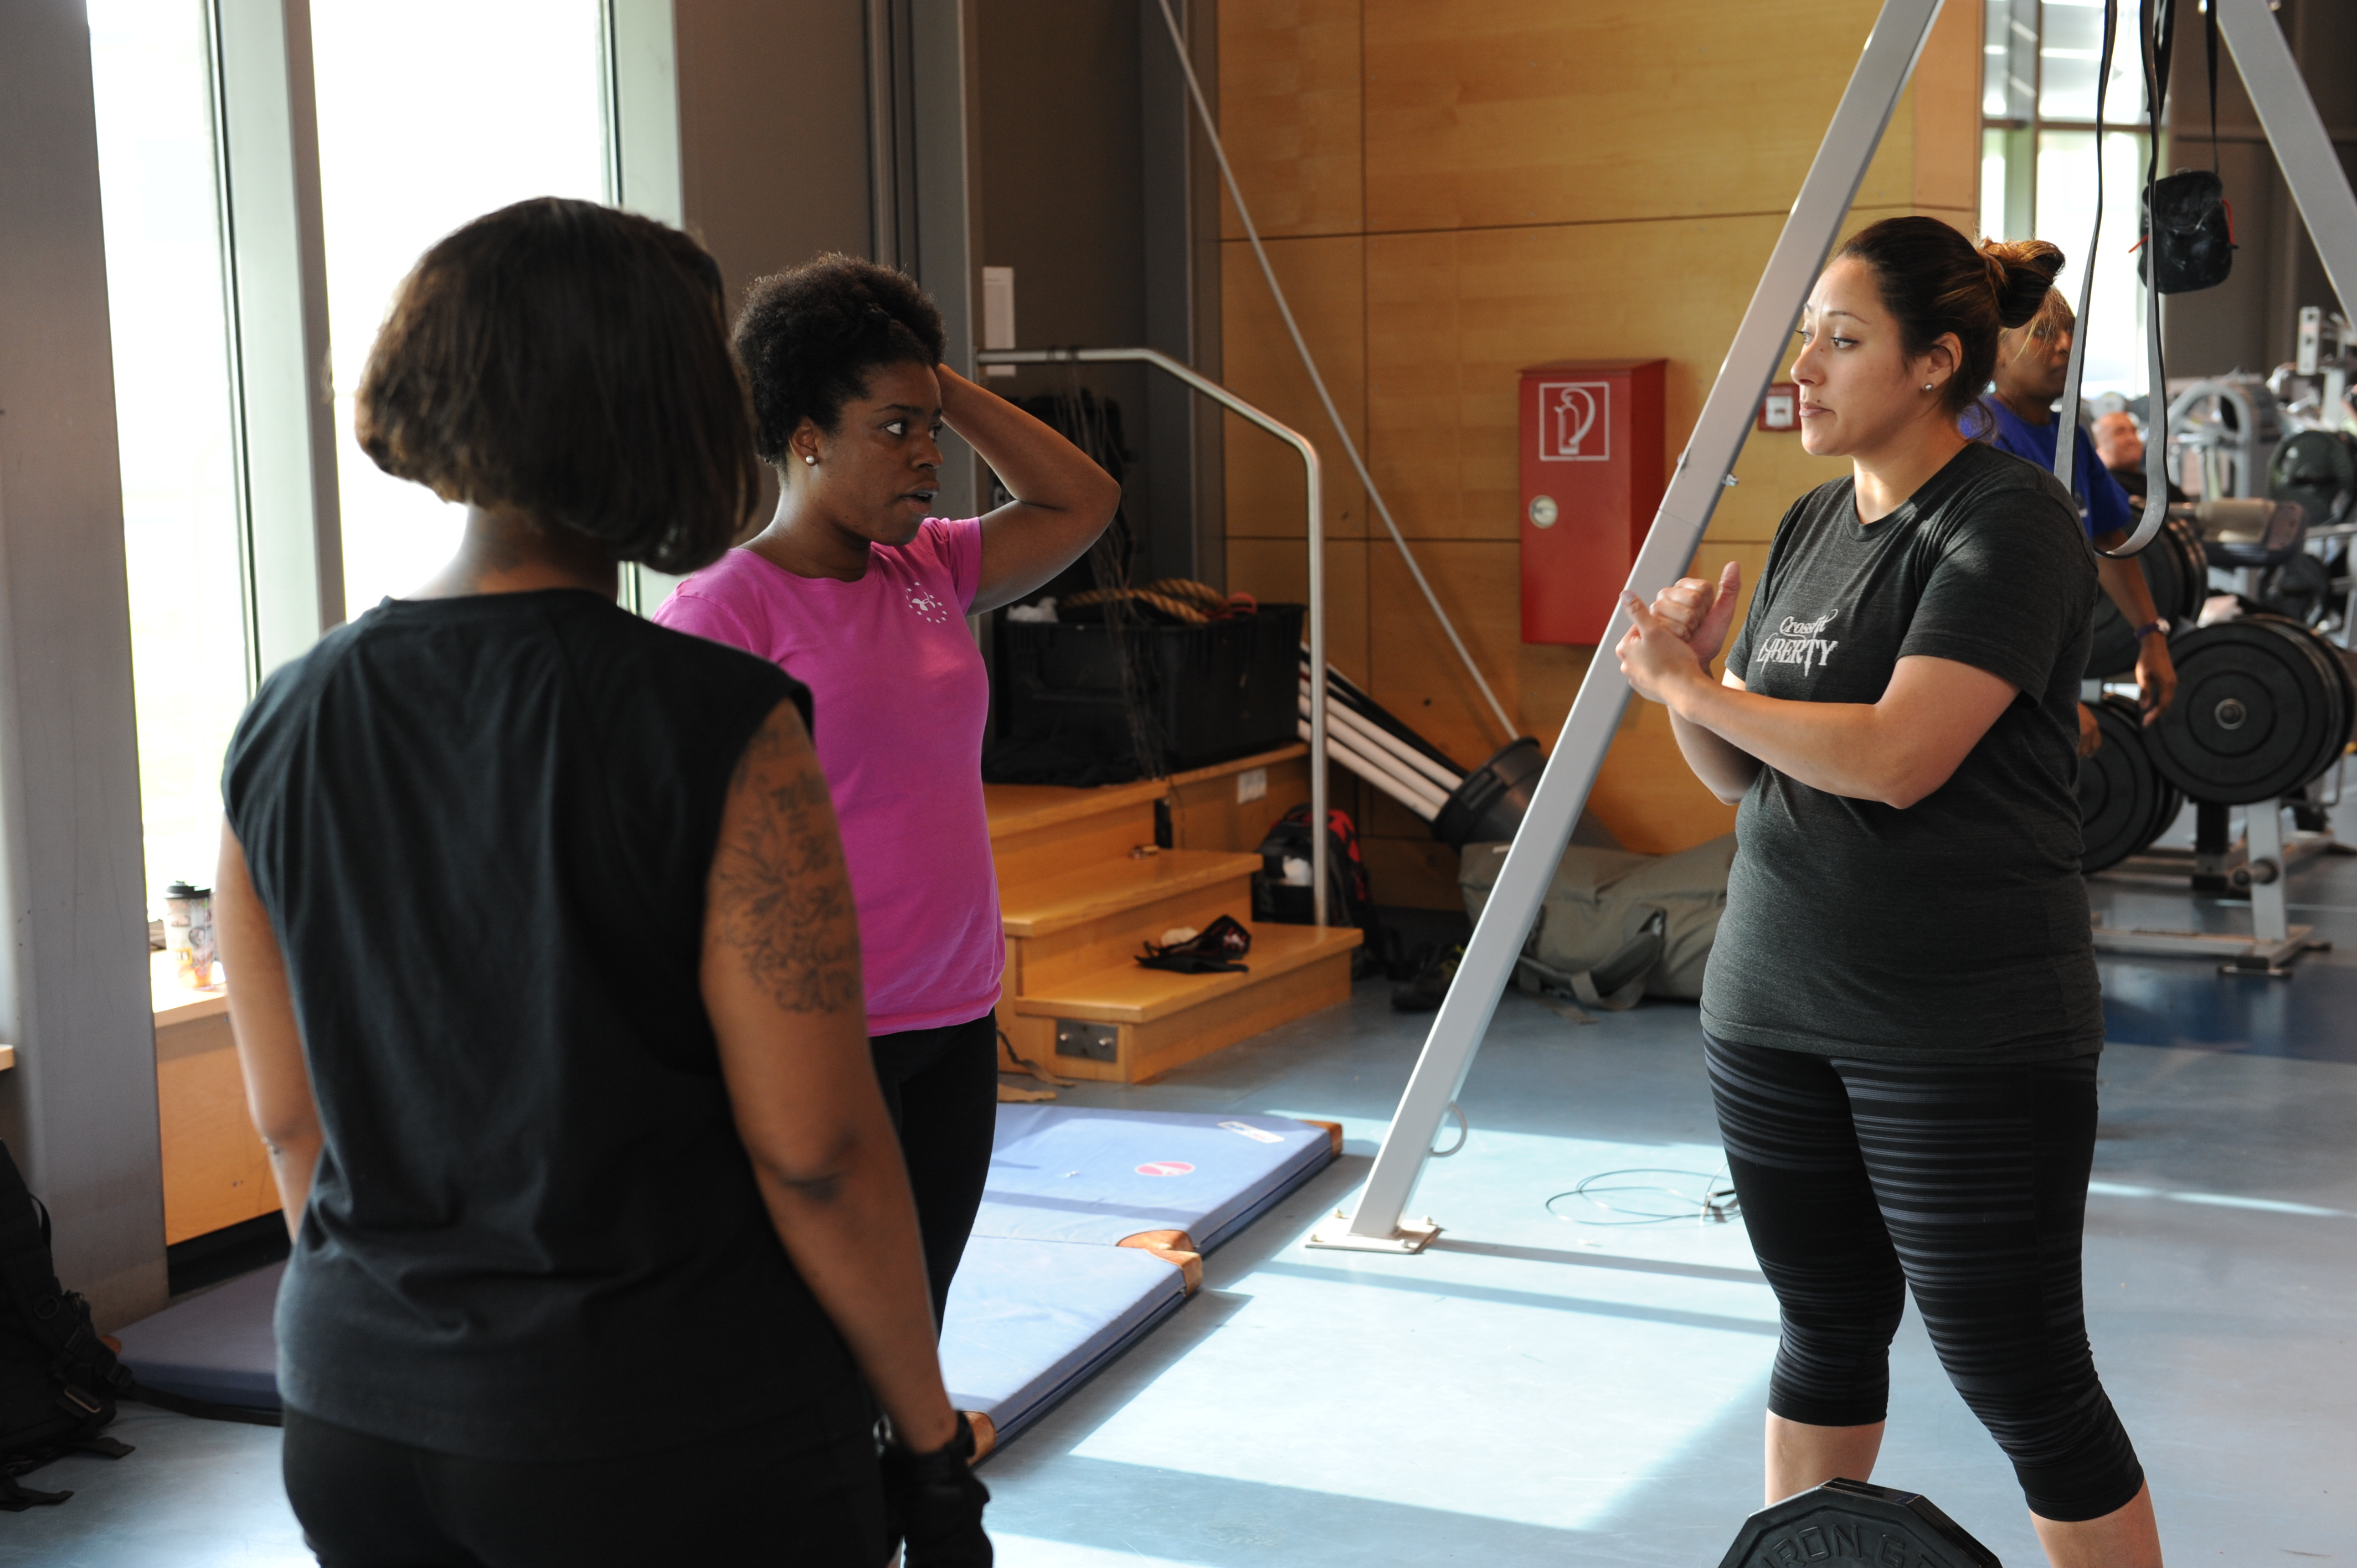 A personal trainer working with two female clients